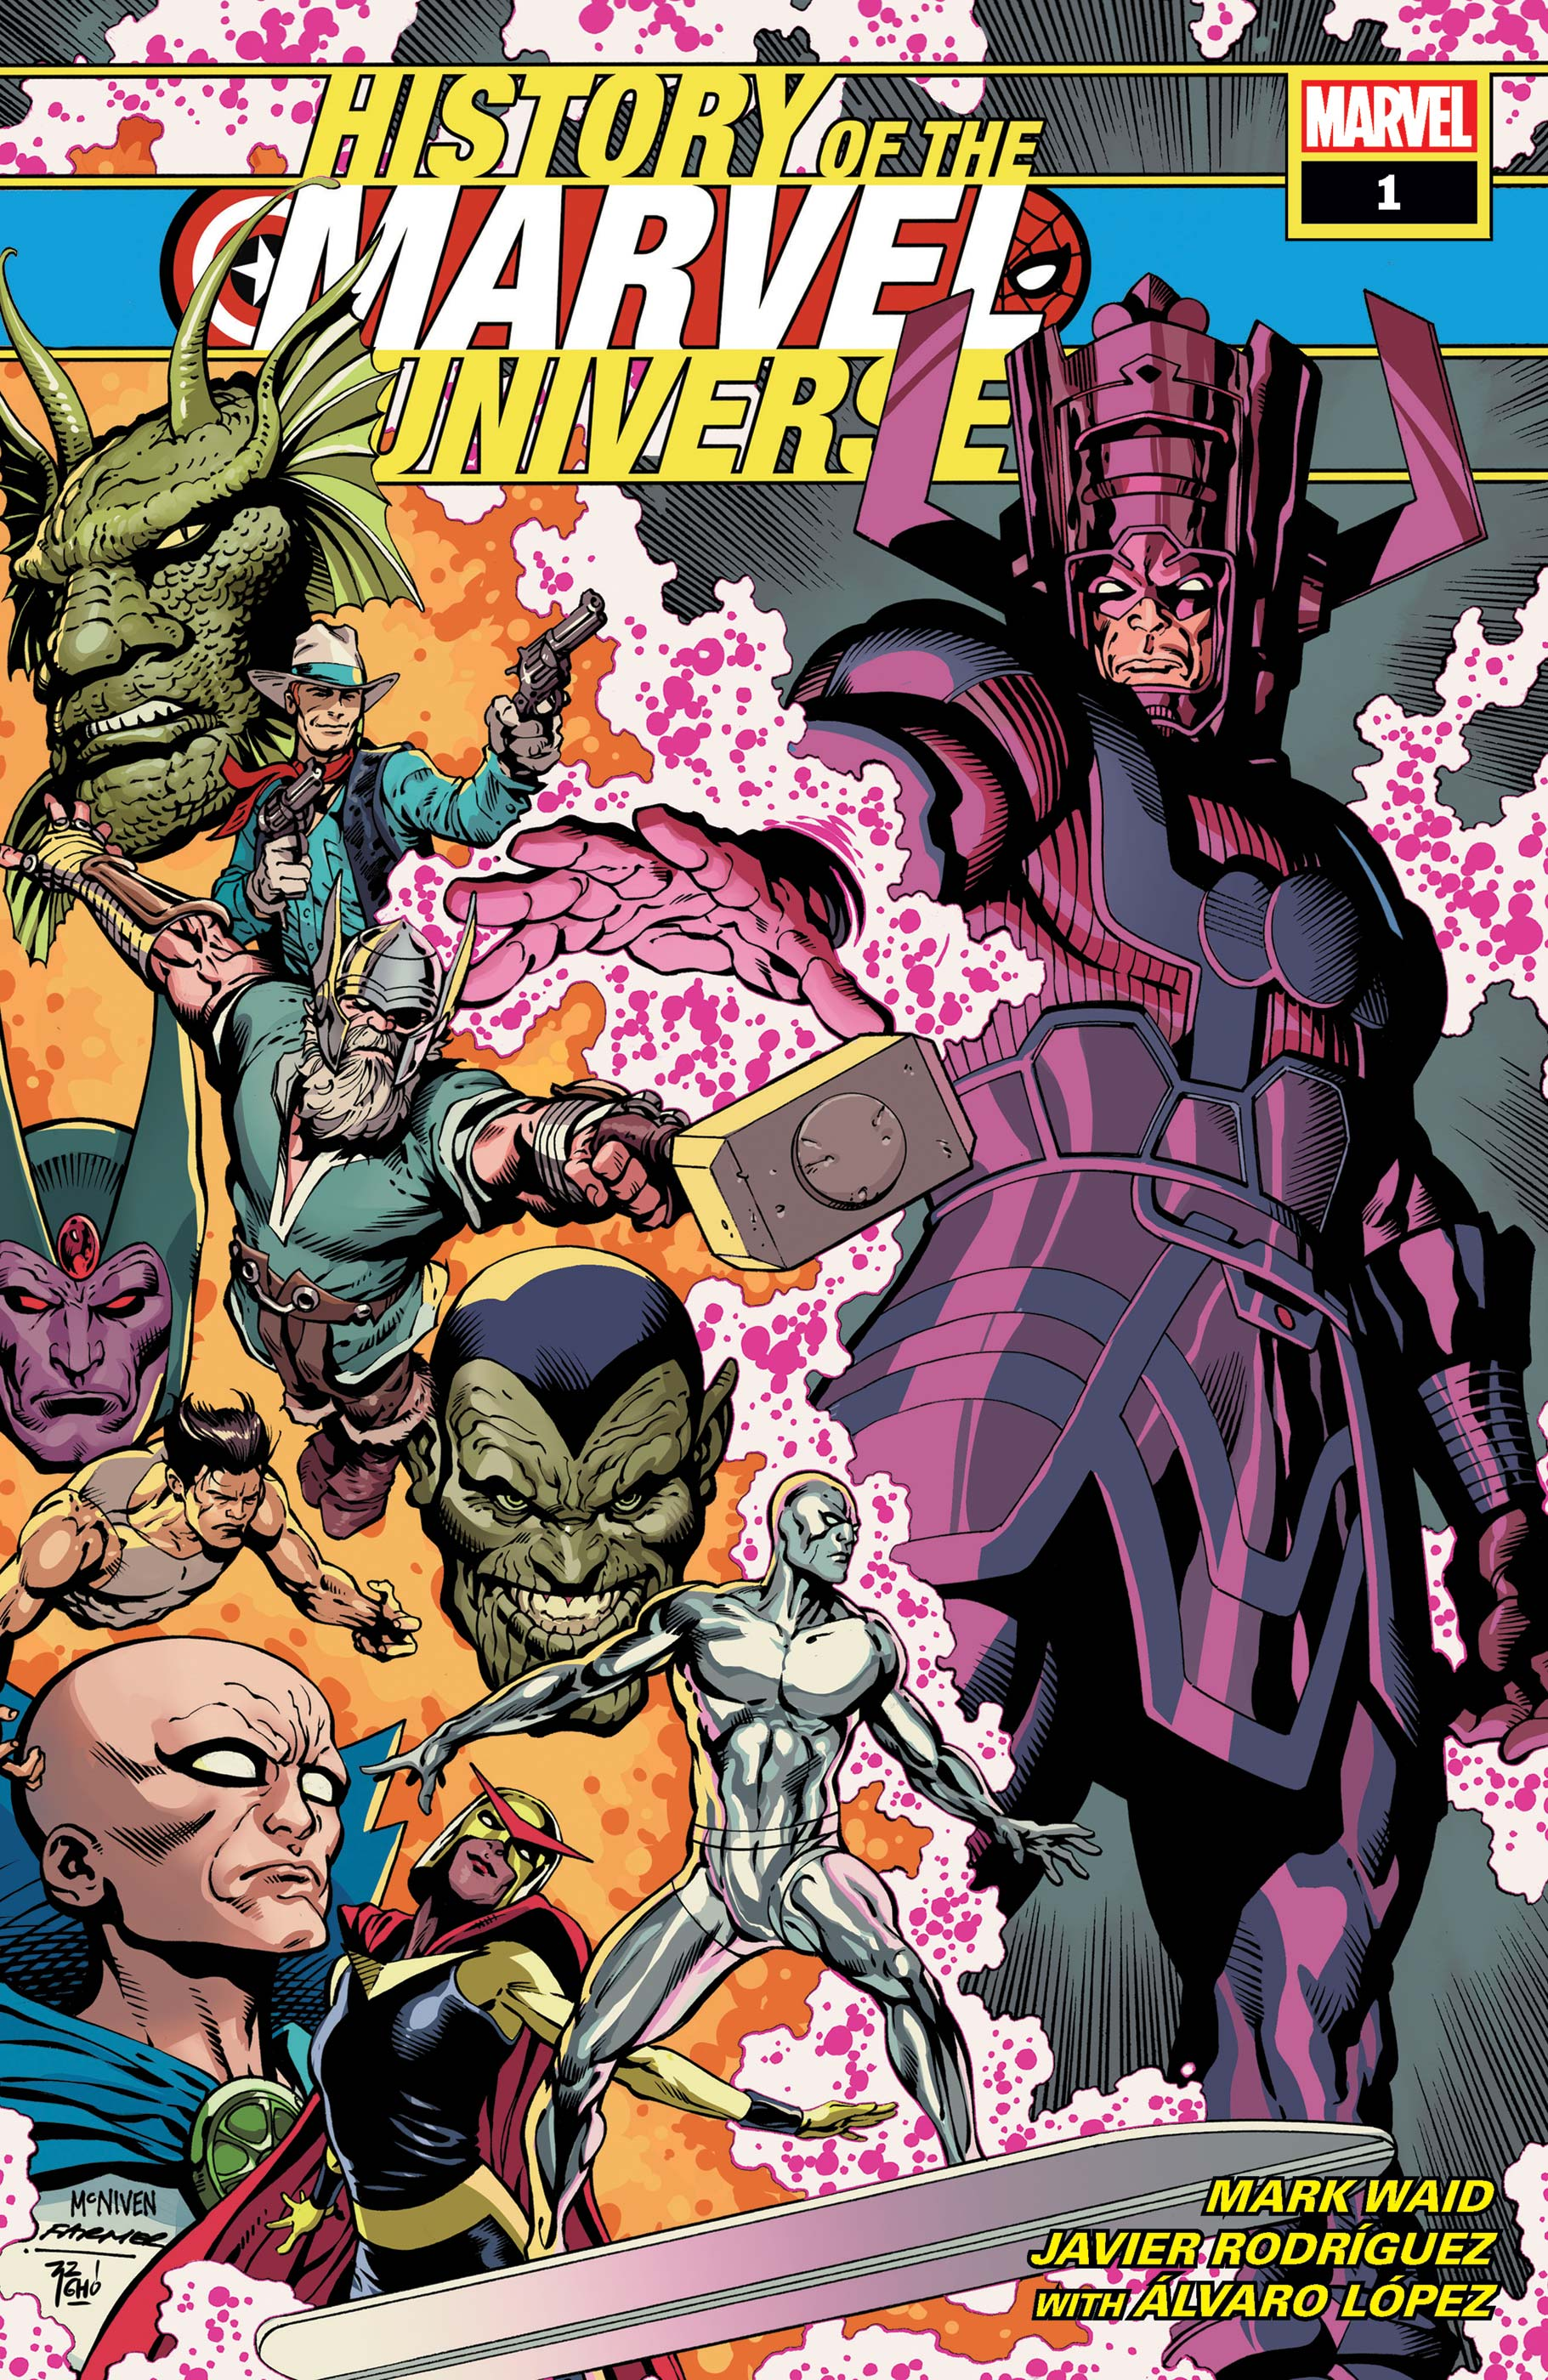 History-of-the-Marvel-Universe-1